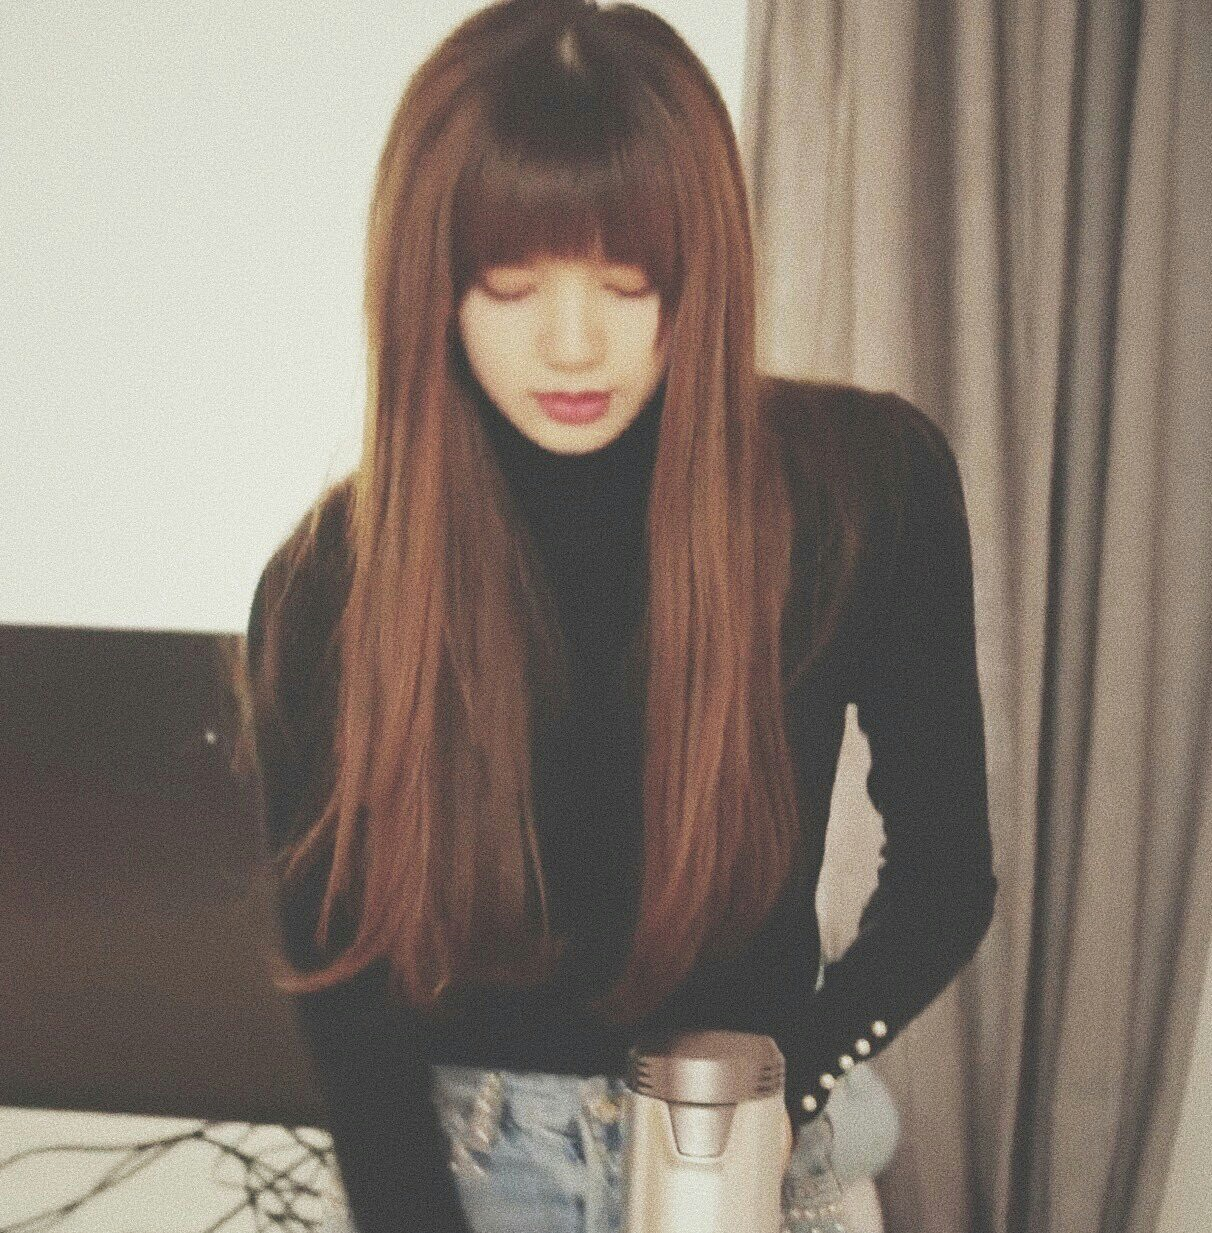 kpop, icon, aesthetic and lisa